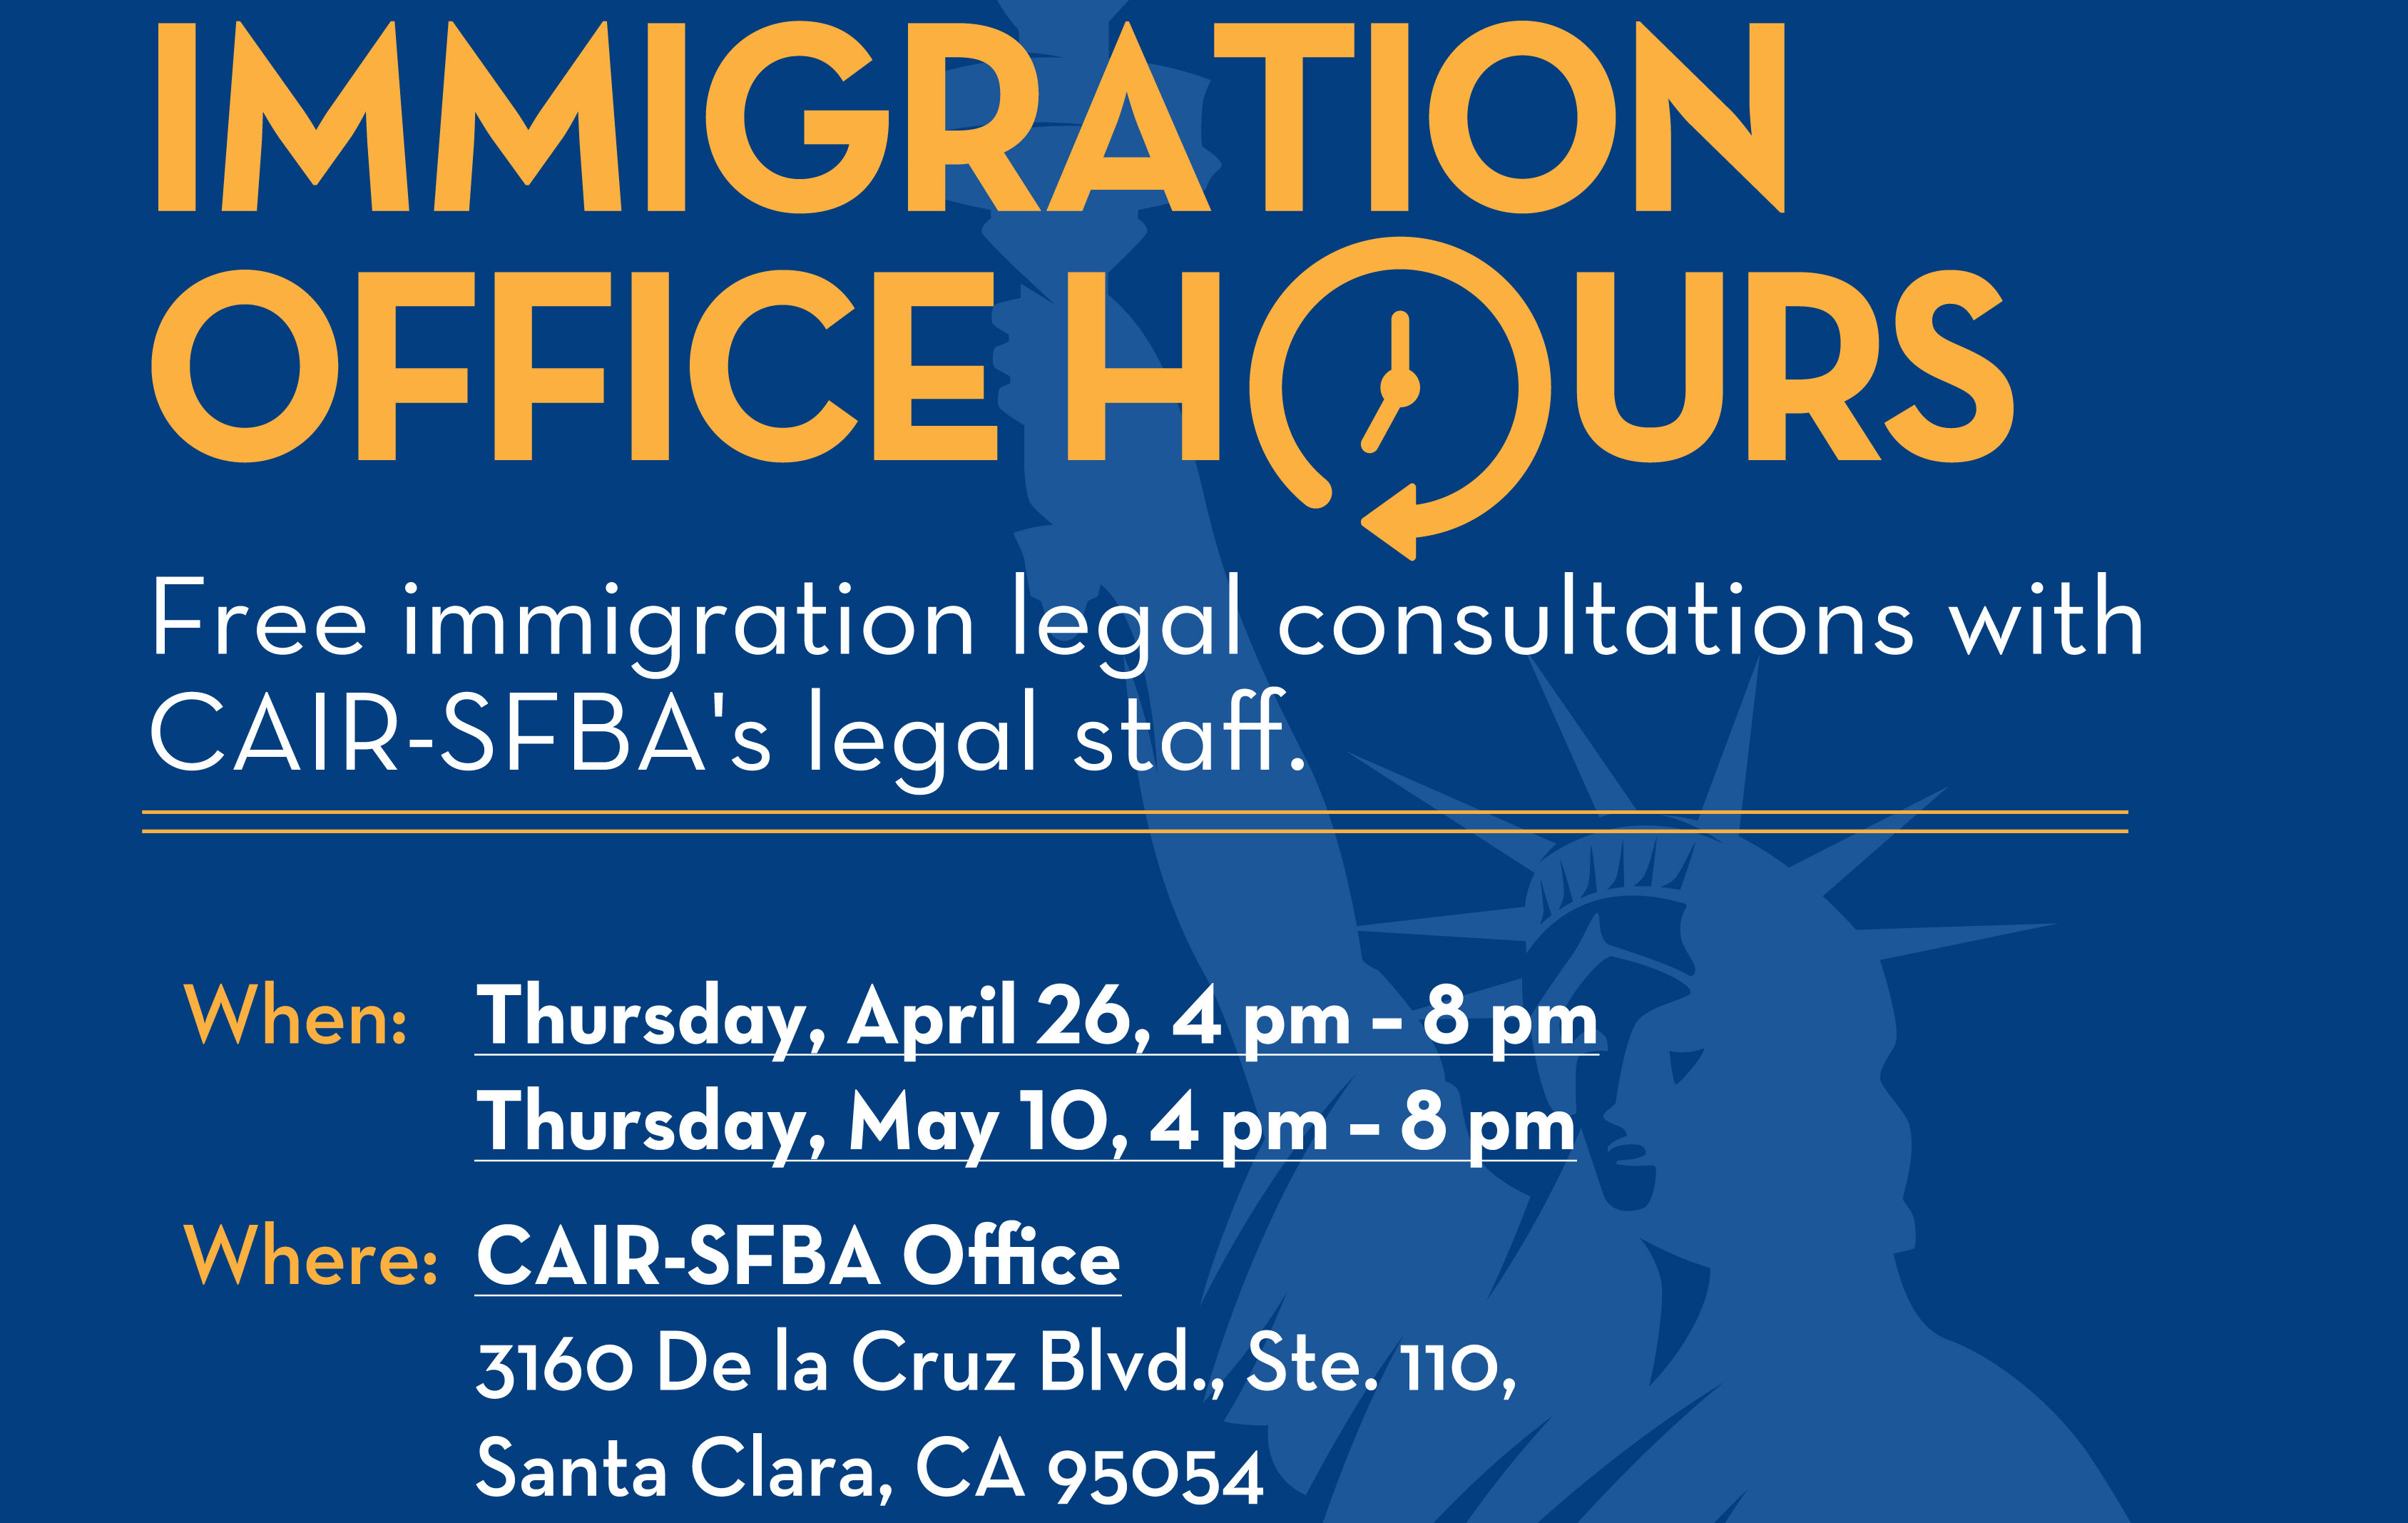 Immigration Office Hours Poster